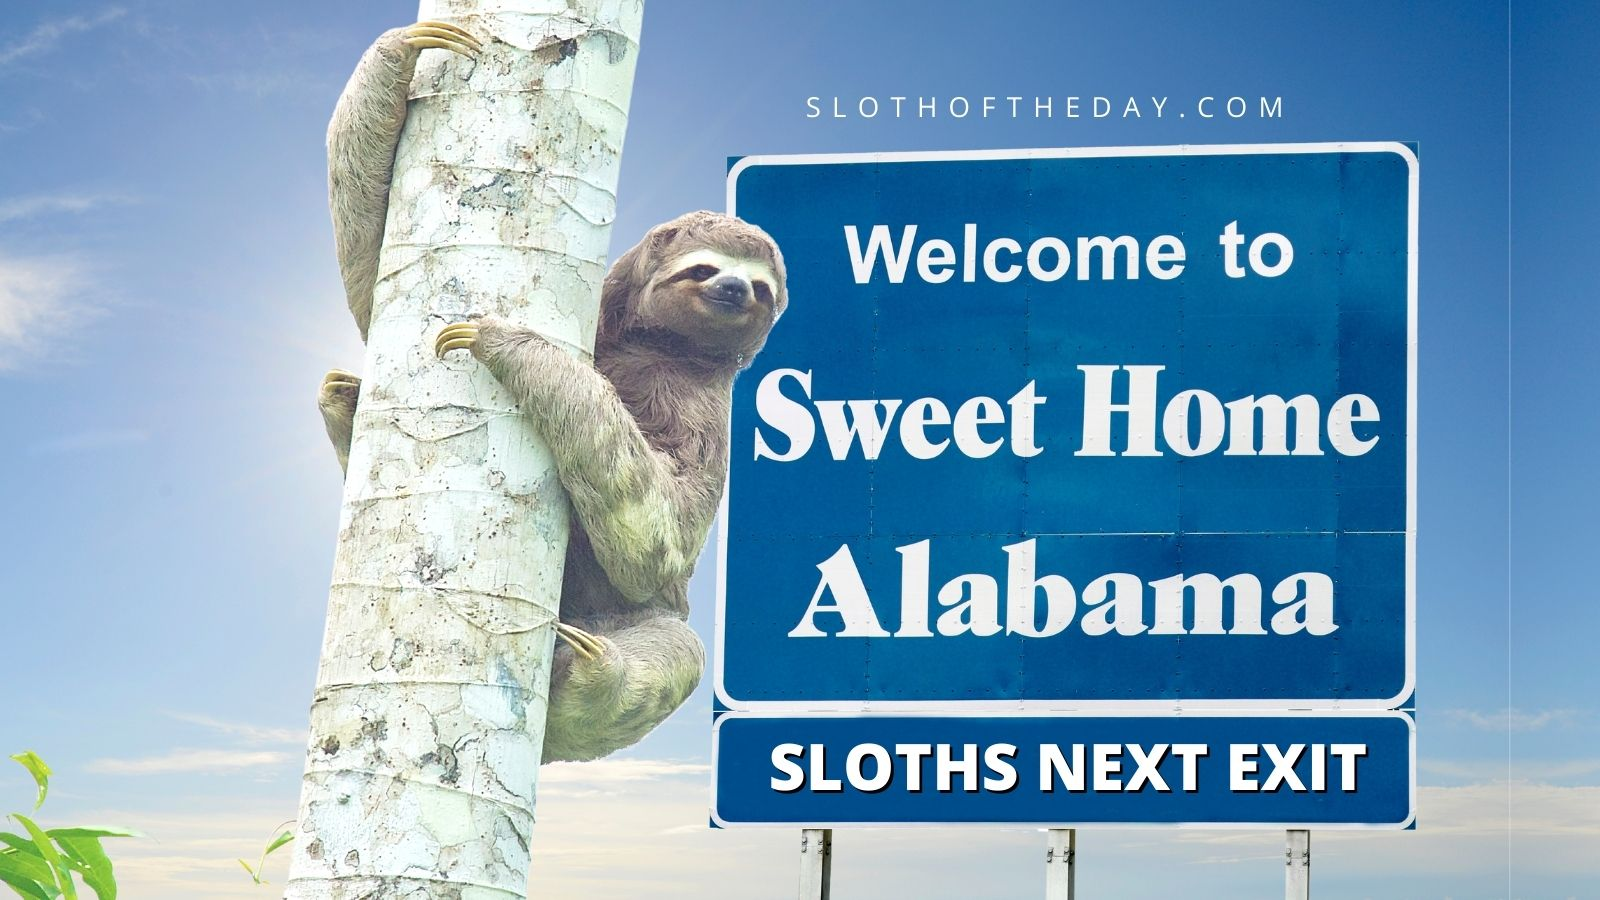 See Hold Sloths in Alabama Sloth Experience Sloth of The Day